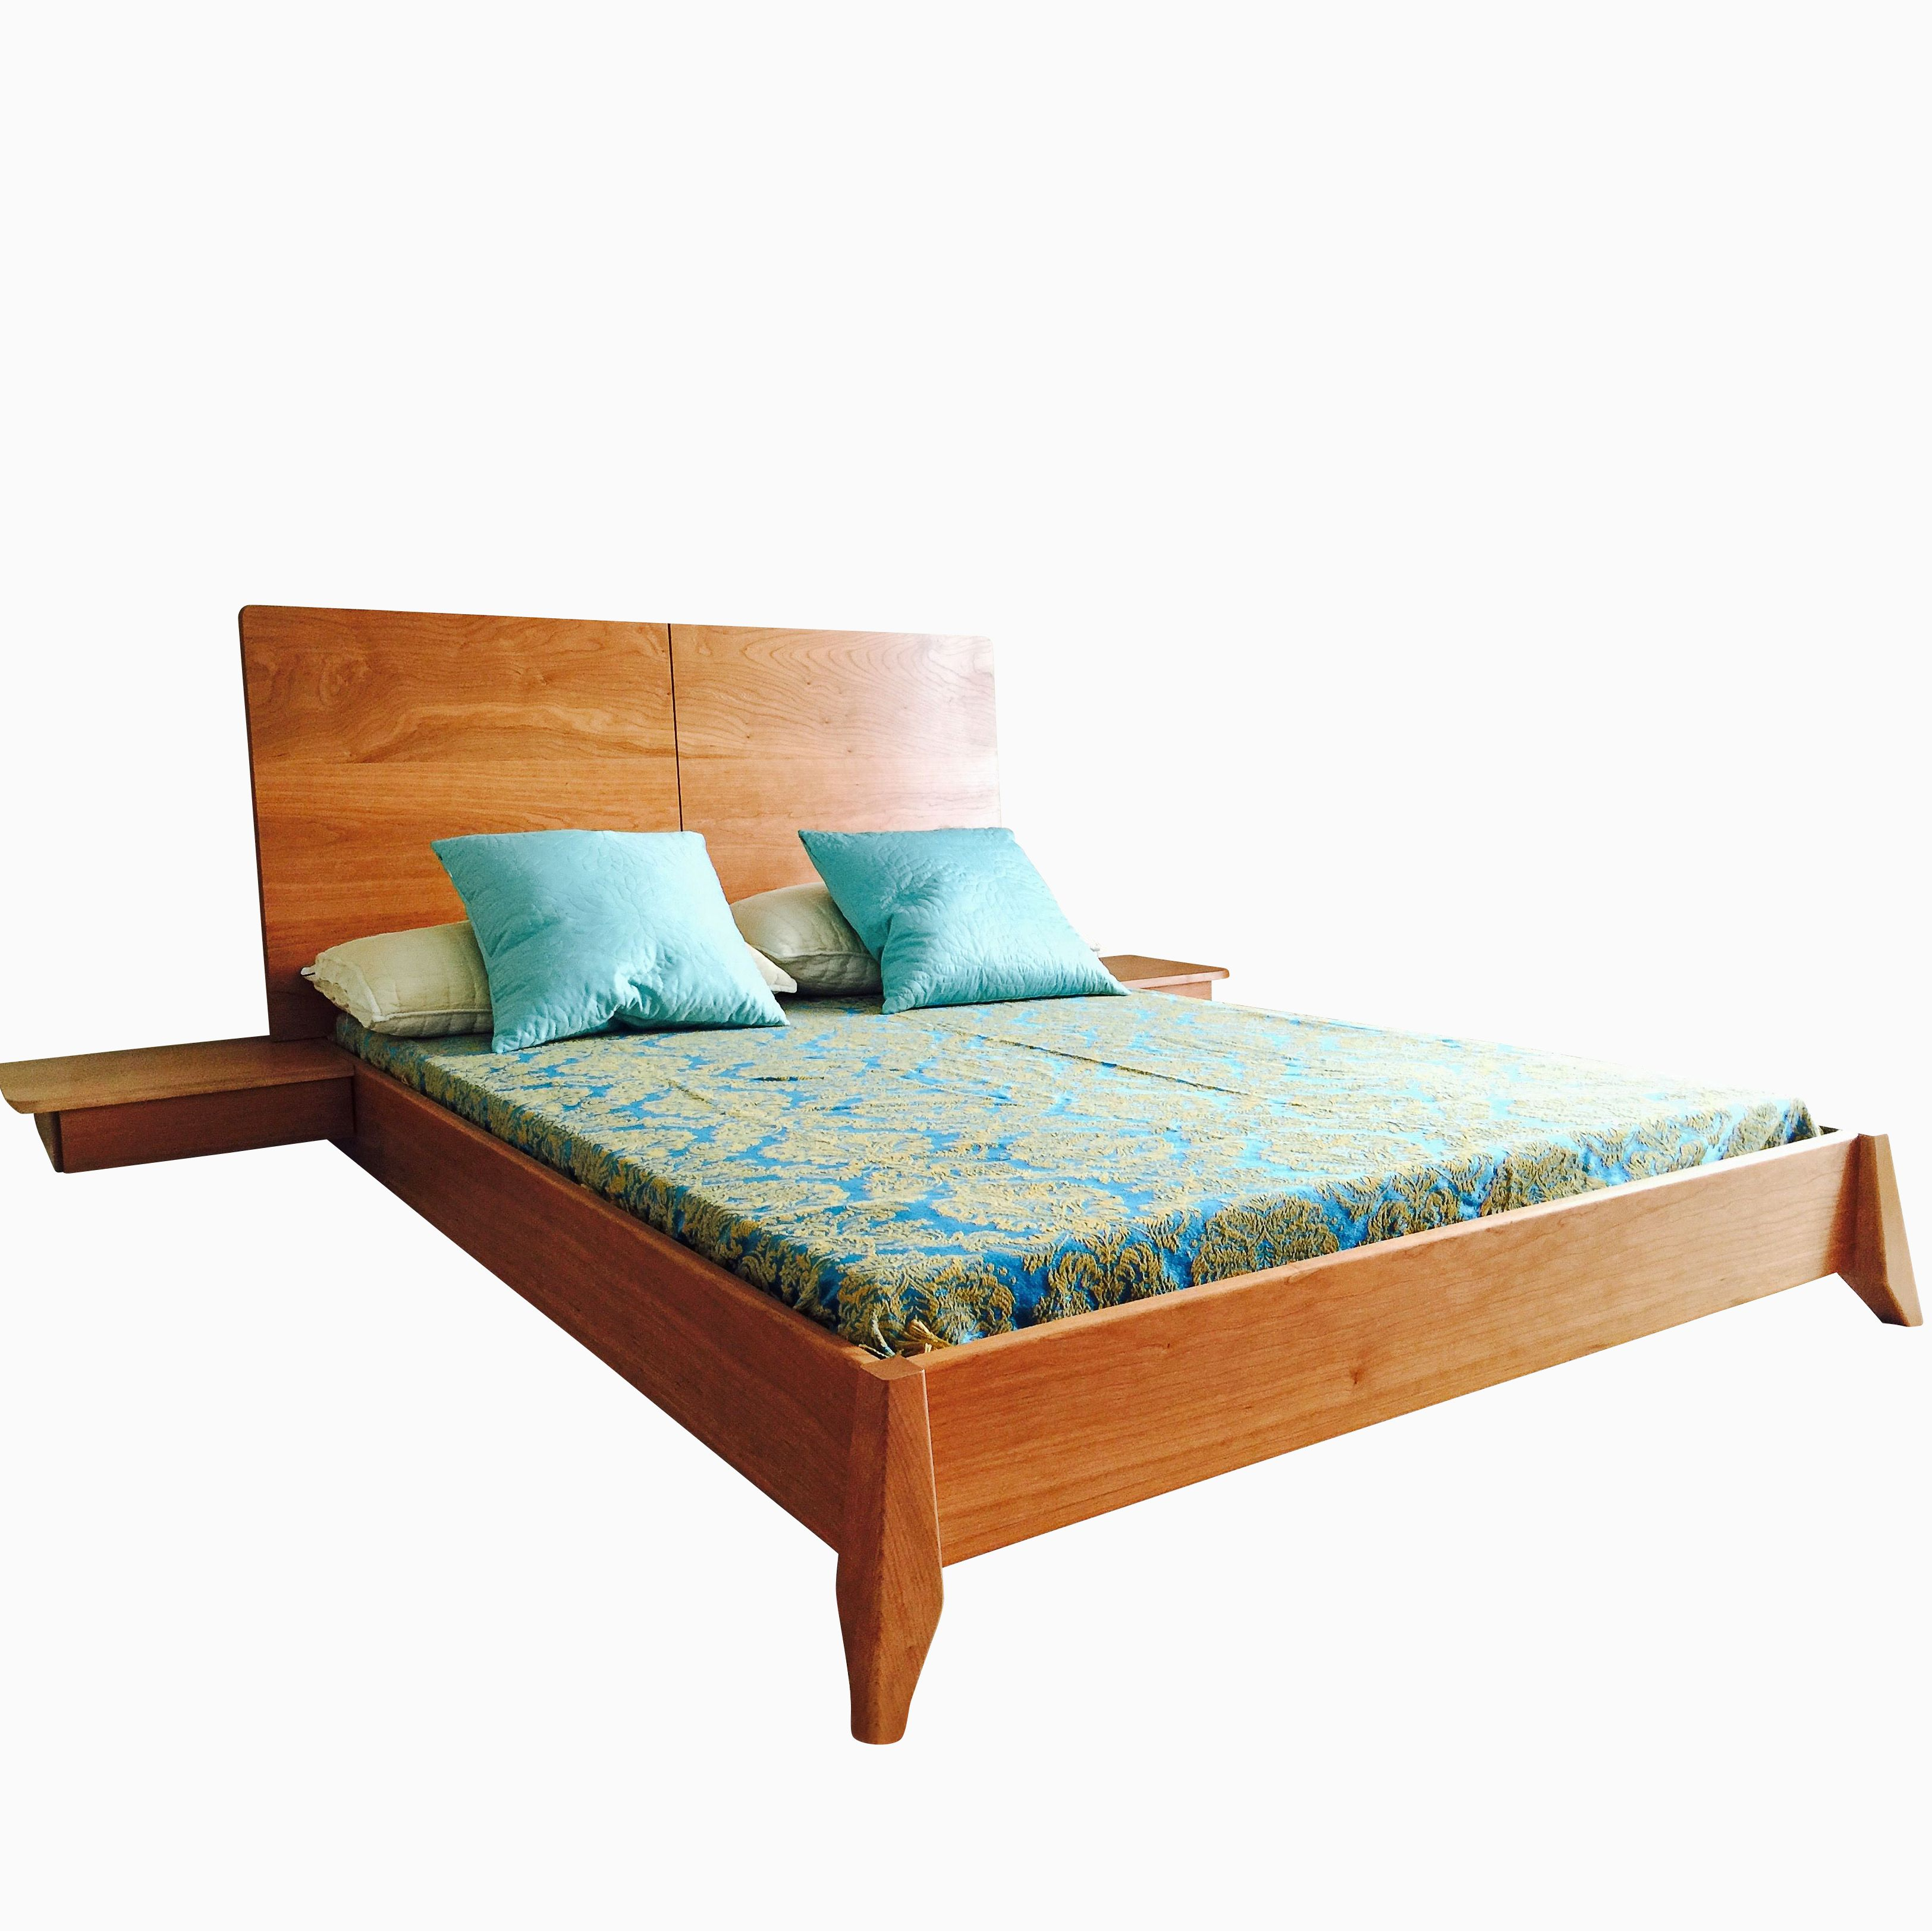 Solid Wood Bed Buy A Hand Made Solid Wood Platform Bed Made To Order